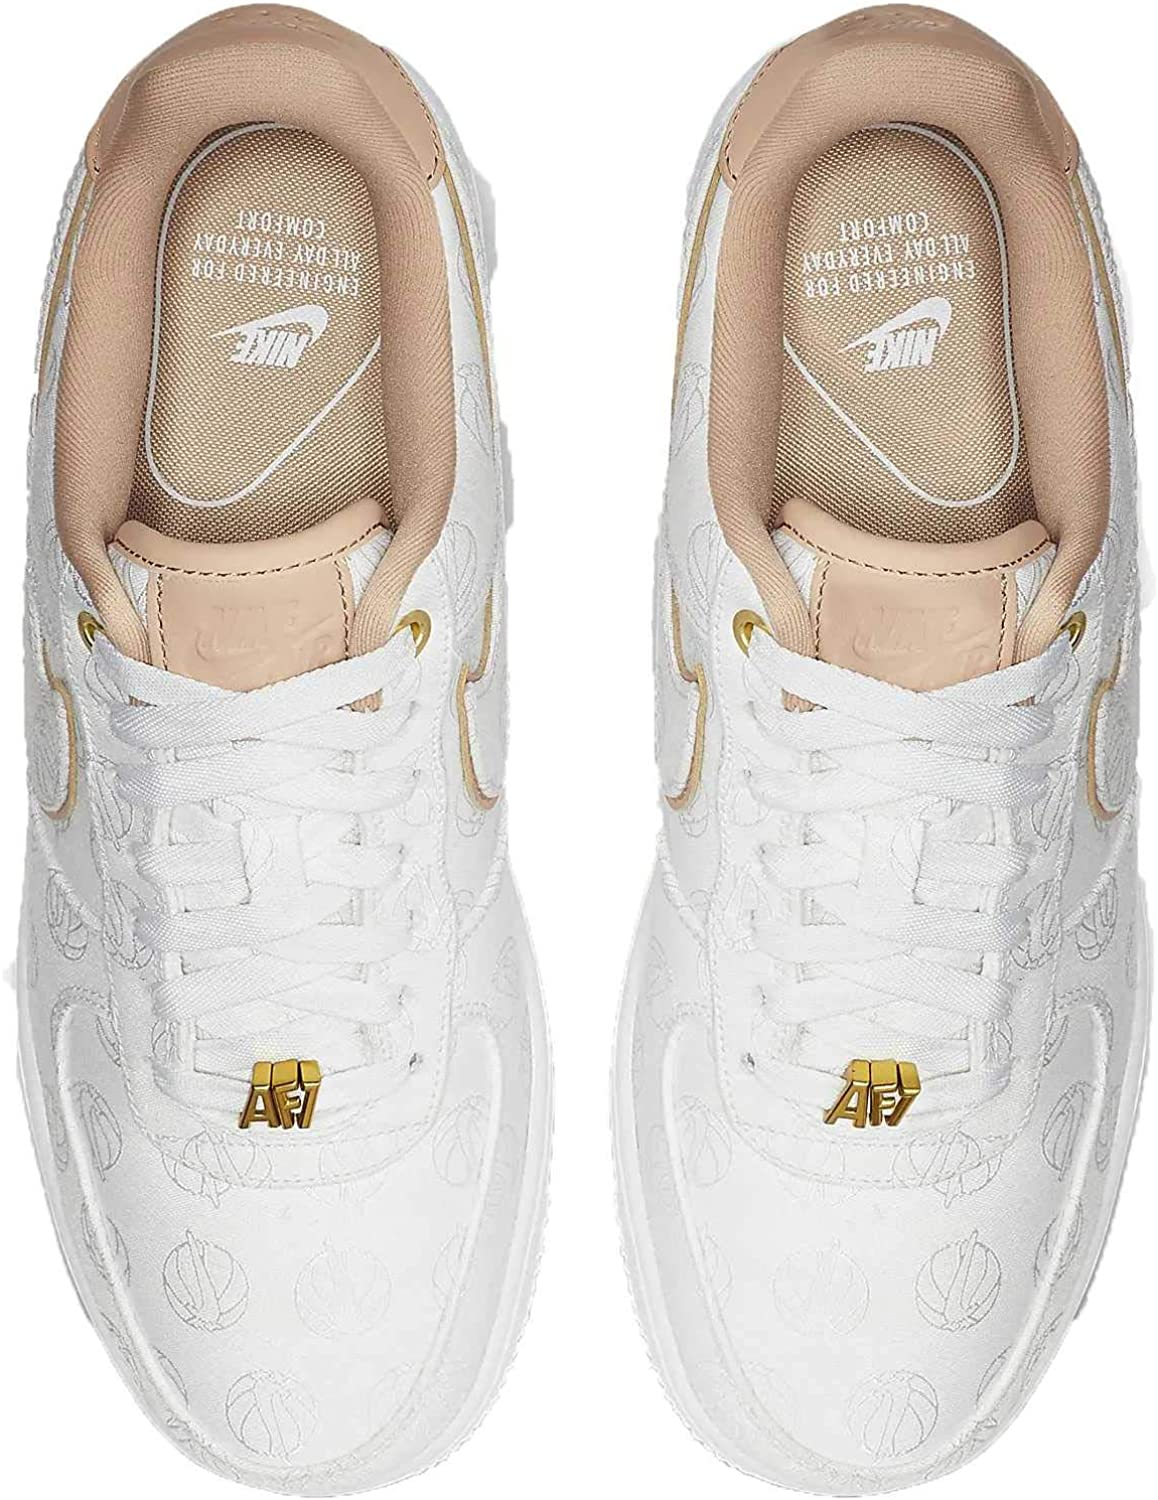 nike air force 1 donna bianche e beige